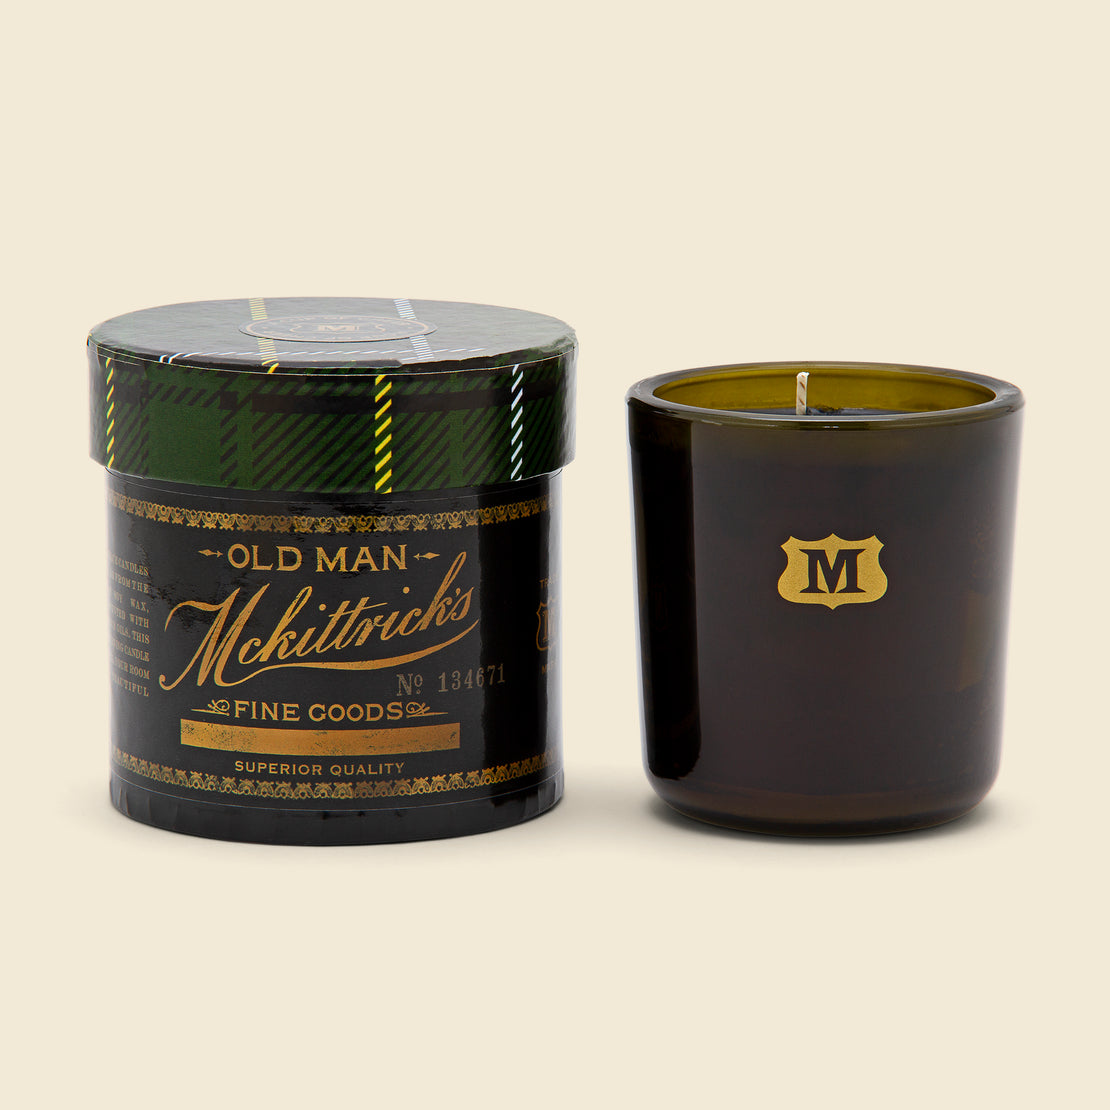 We Took To The Woods Candle 8.5oz - A Cup of Cheer, Tartan Box